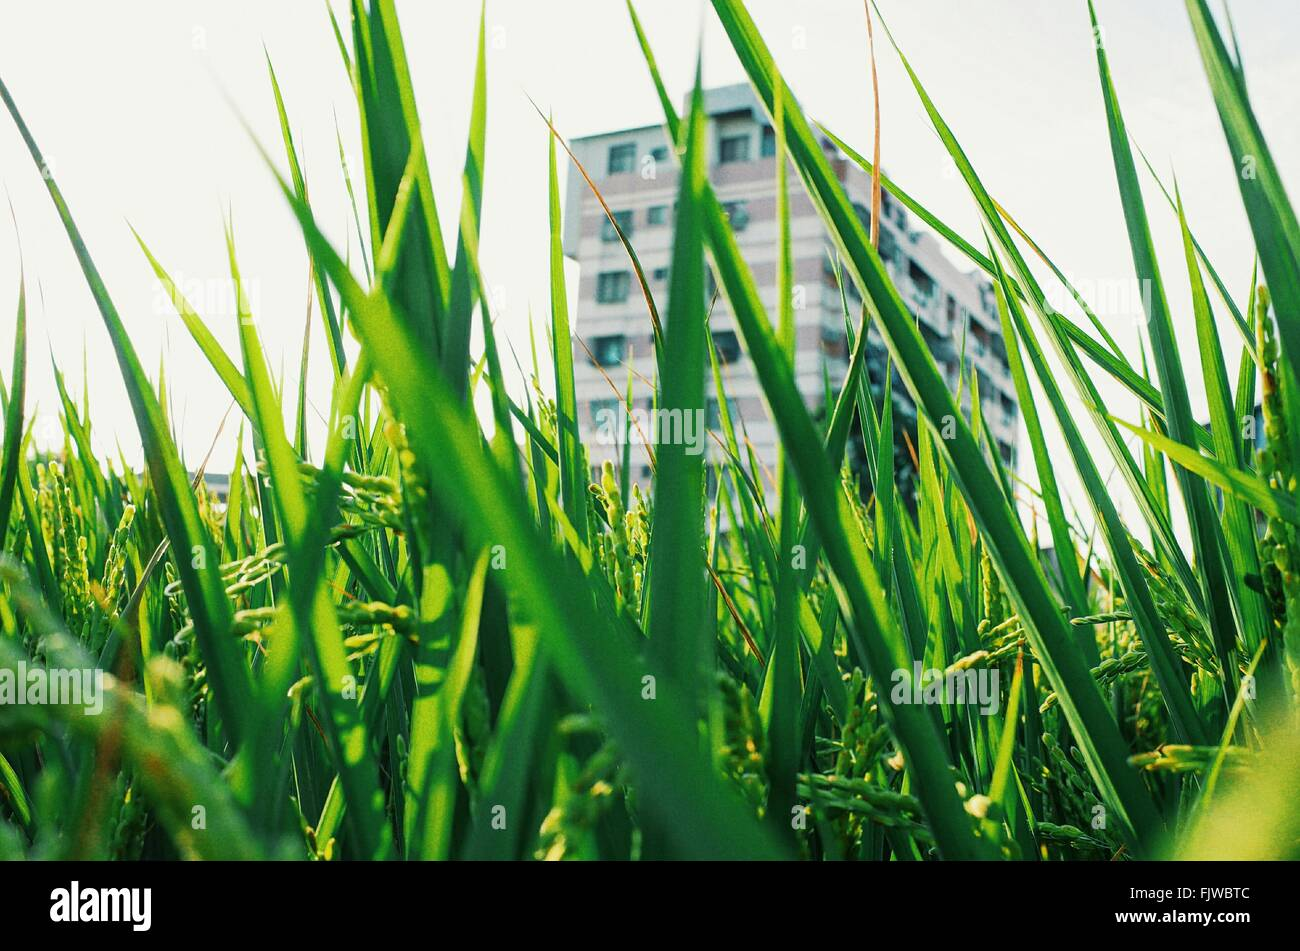 Close-Up Of Rice Paddy By Building Against Sky - Stock Image